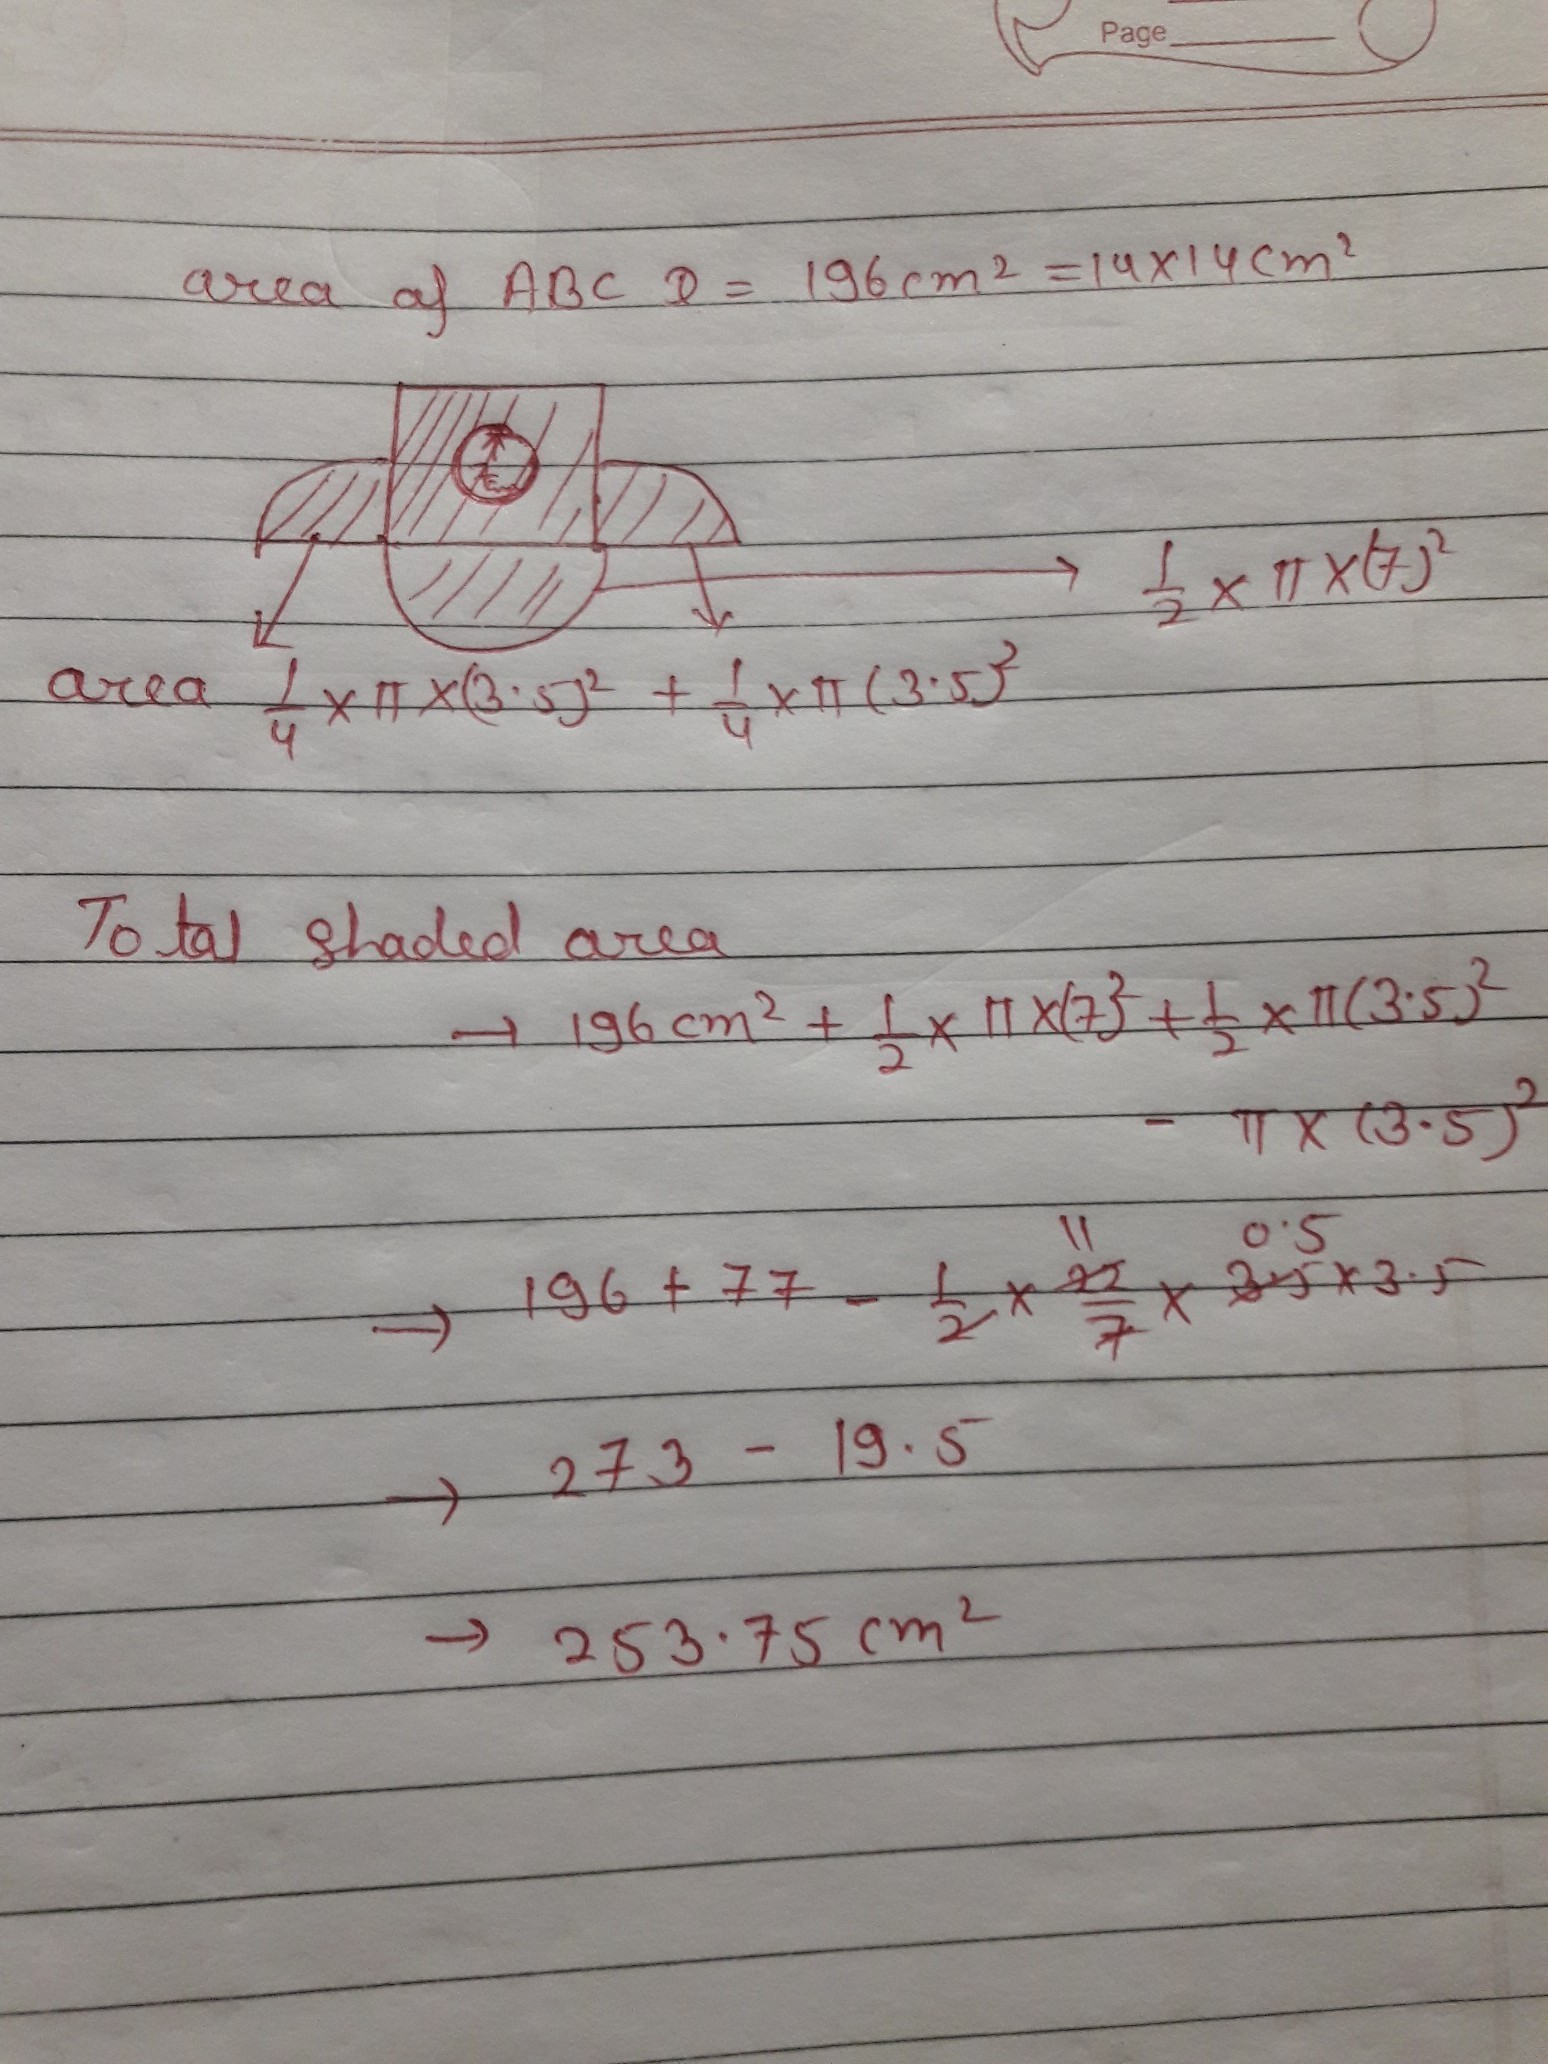 In The Given Figure Find The Area Of The Shaded Region